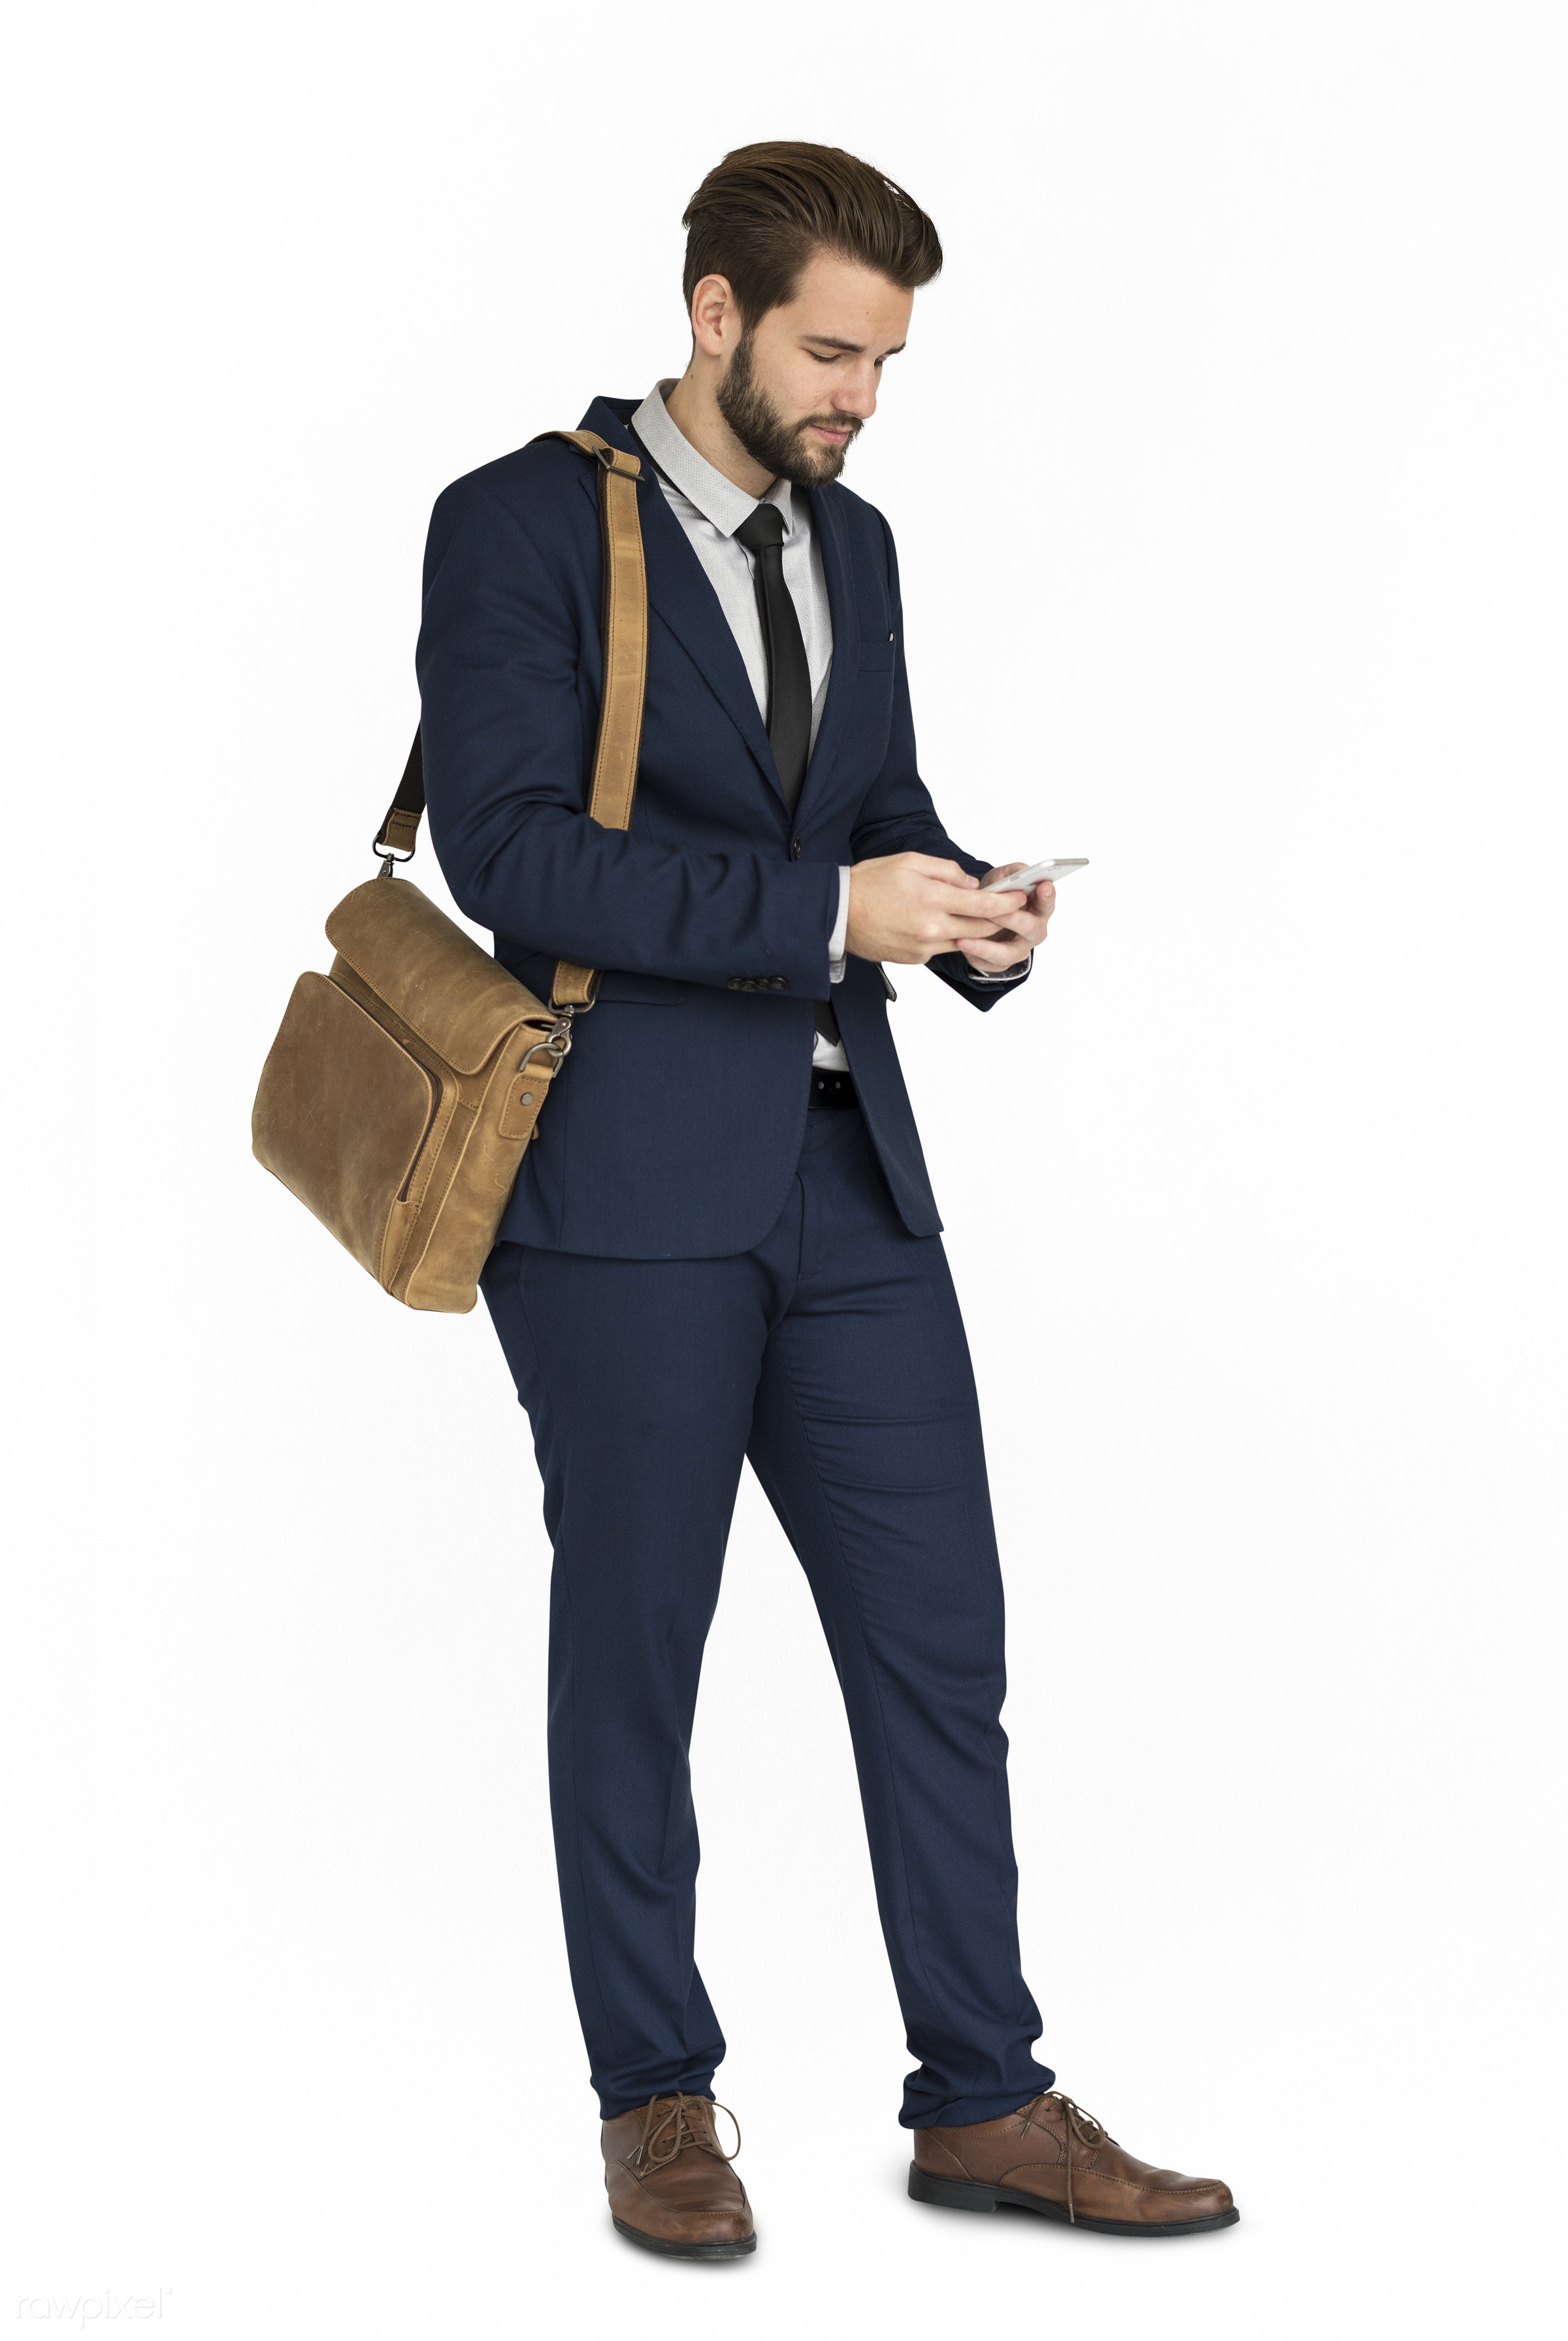 Caucasian Business Man Phone Smile - expression, studio, person, phone, business wear, messenger bag, isolated on white,...